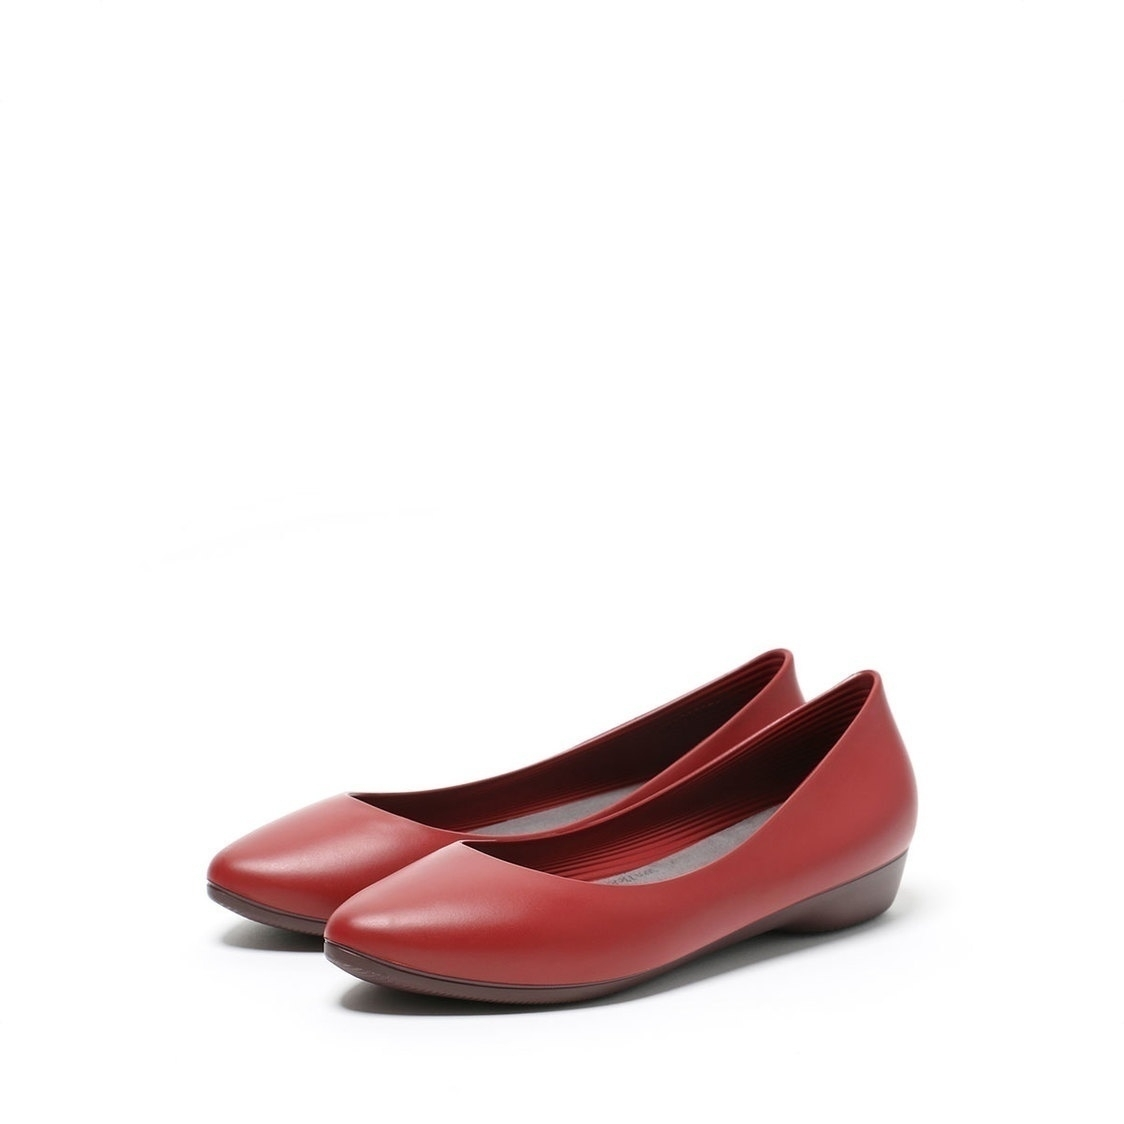 F3 Flat-Pointed Heel height 3cm Denim Red